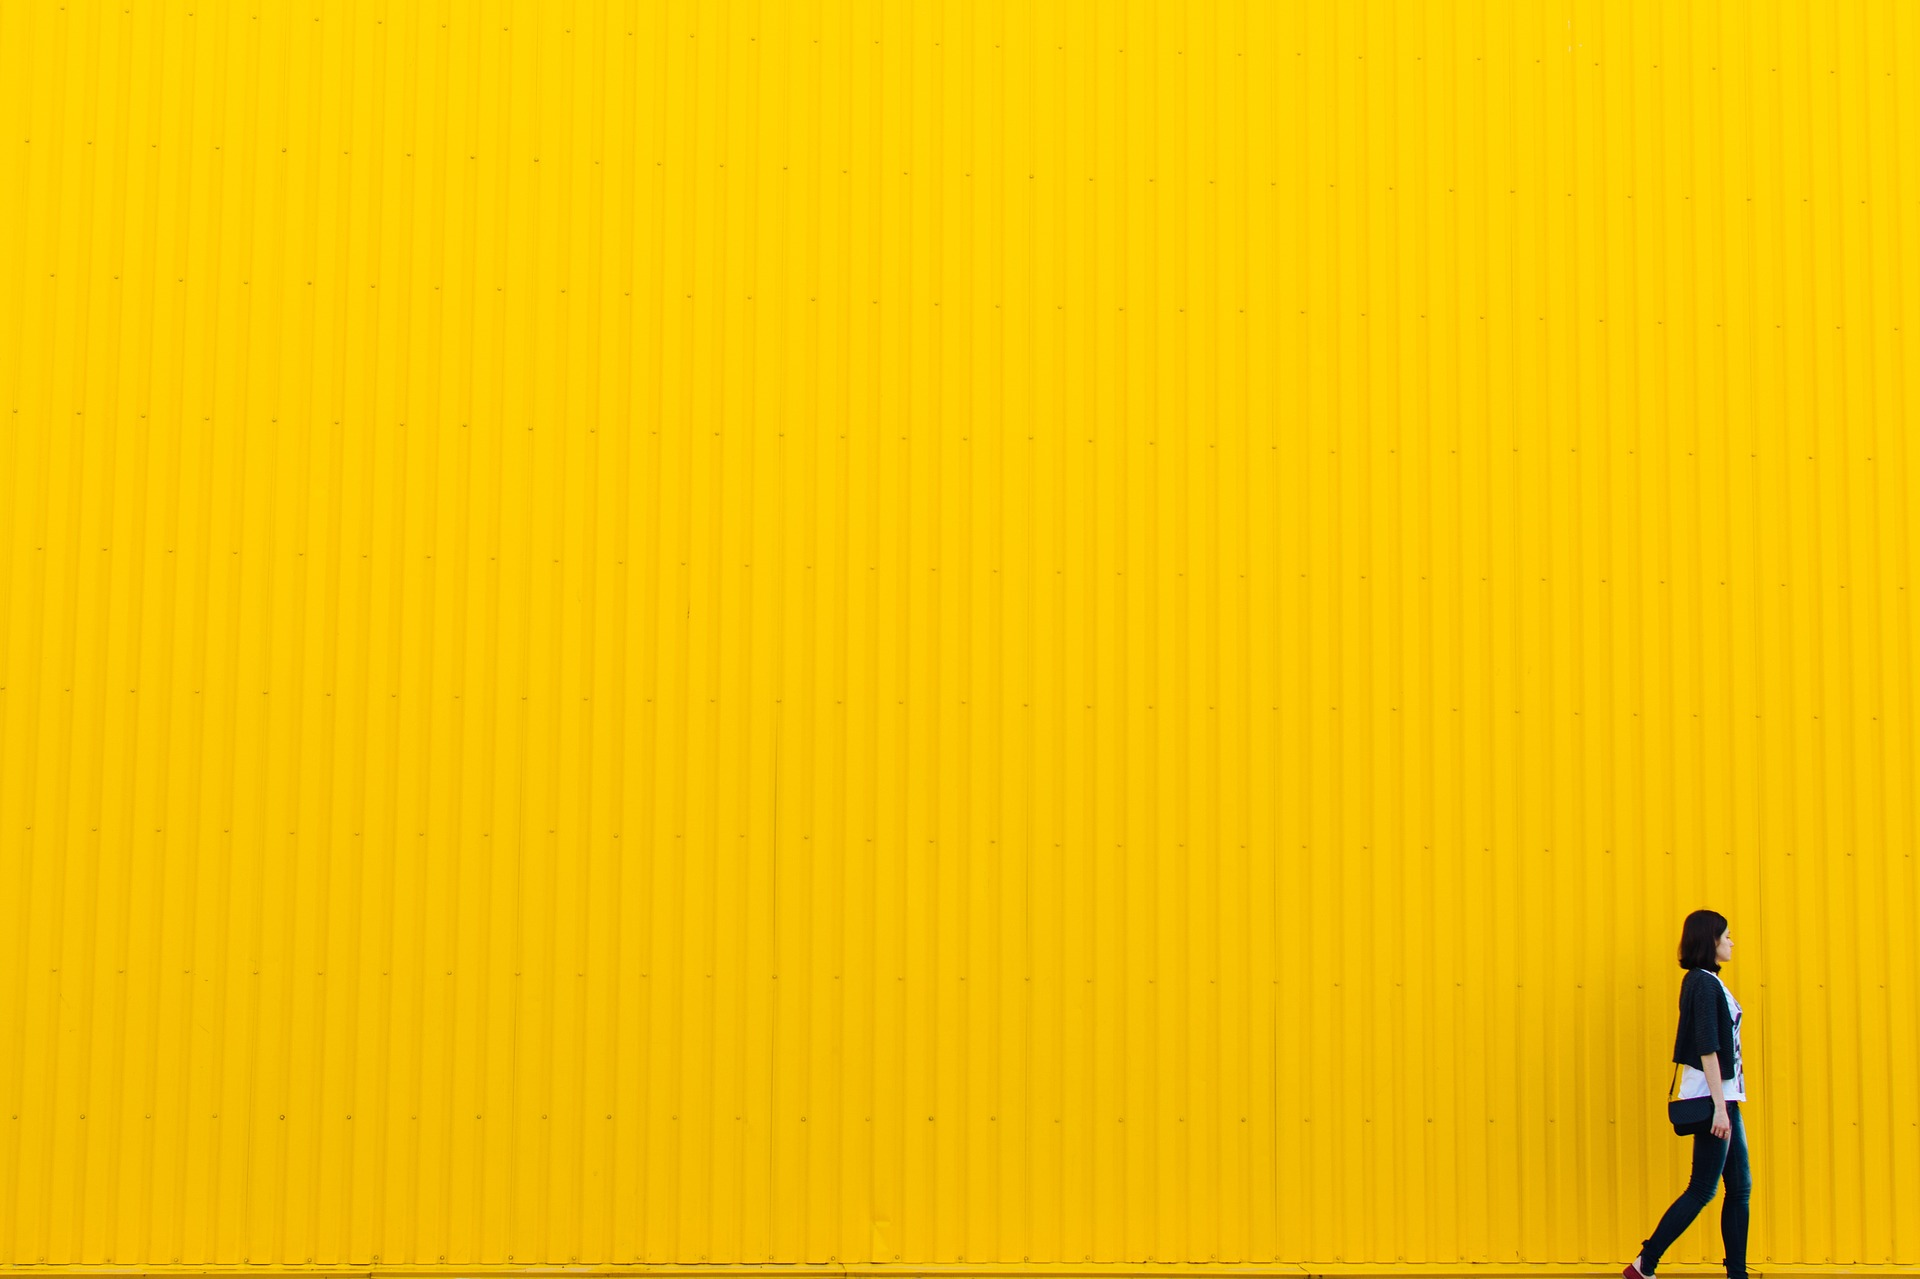 Young_person_yellow.jpg